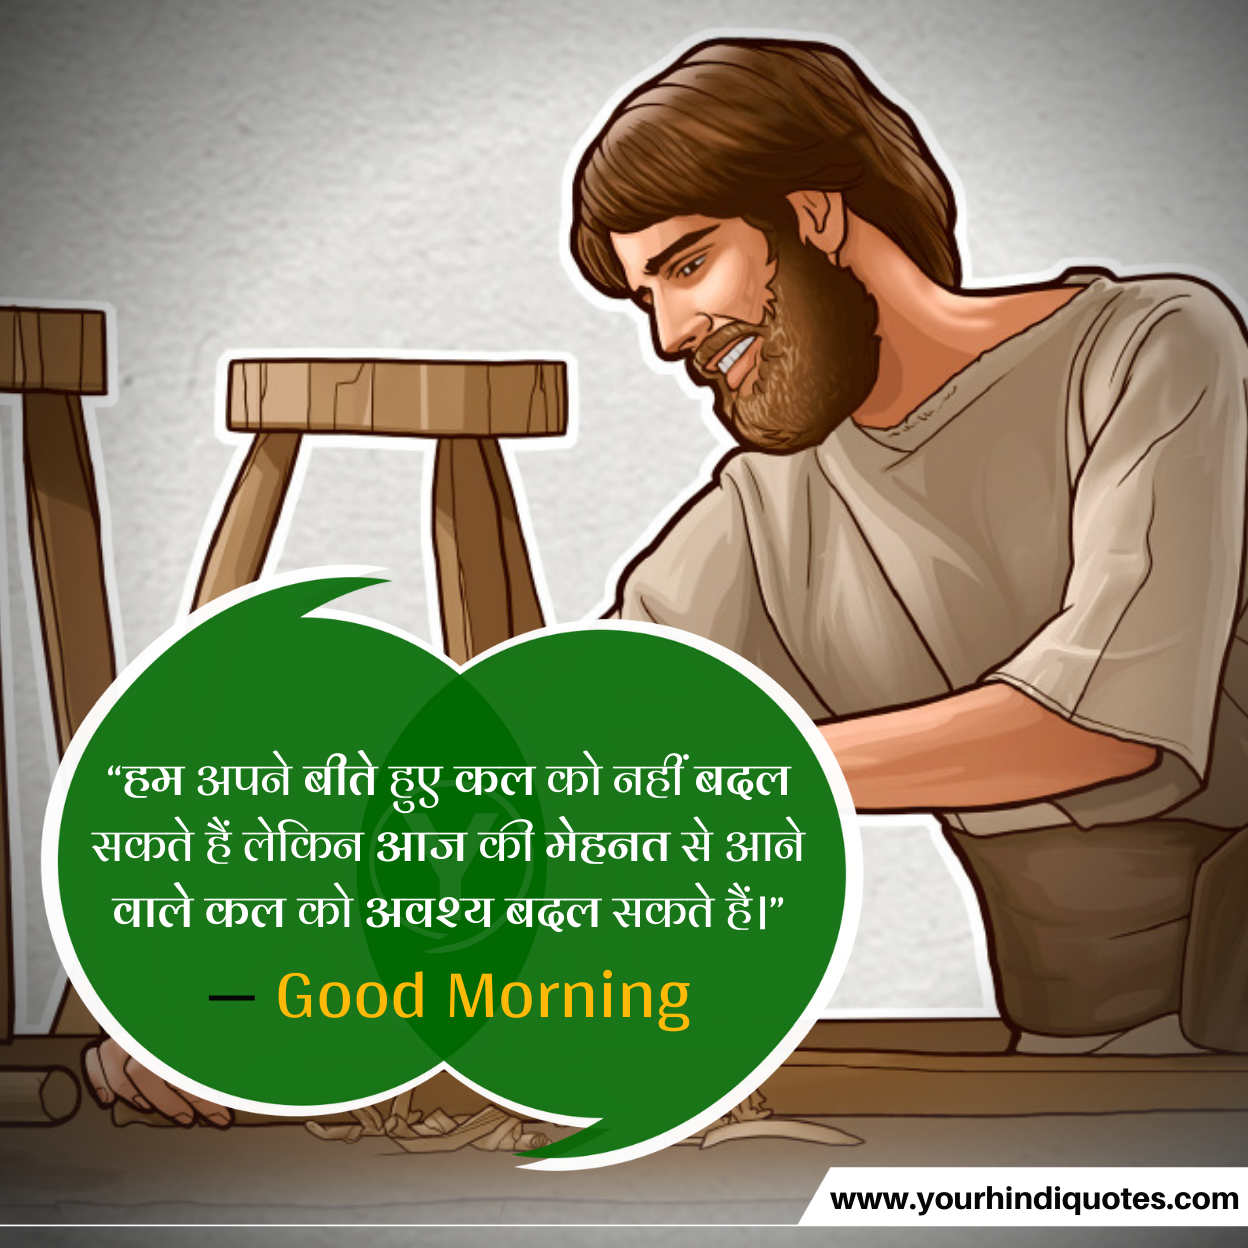 Good Morning Thoughts Pics